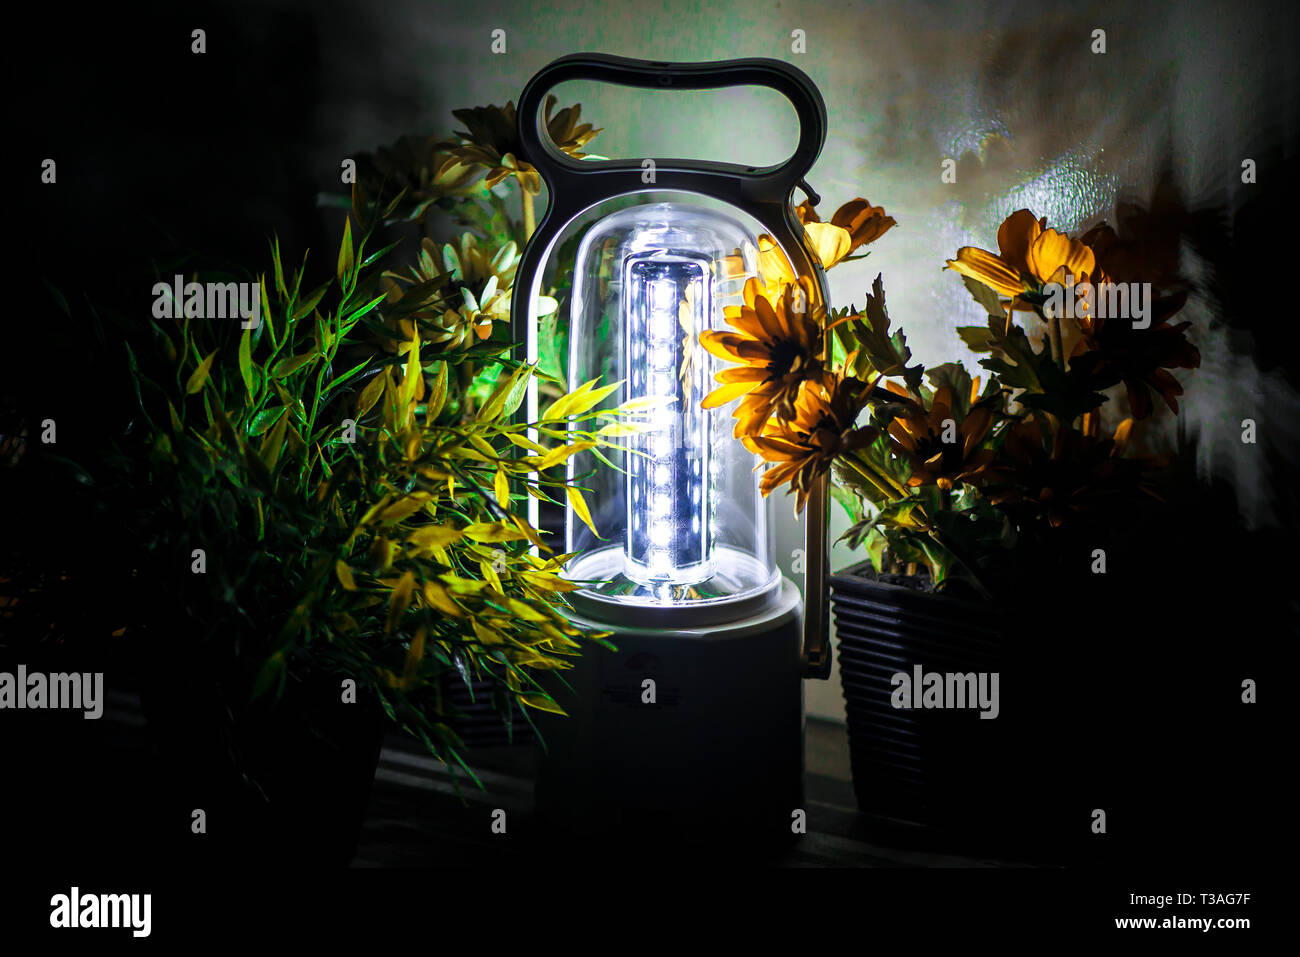 Glowing LED lantern illuminating on a desk with some green and yellow flowers Stock Photo